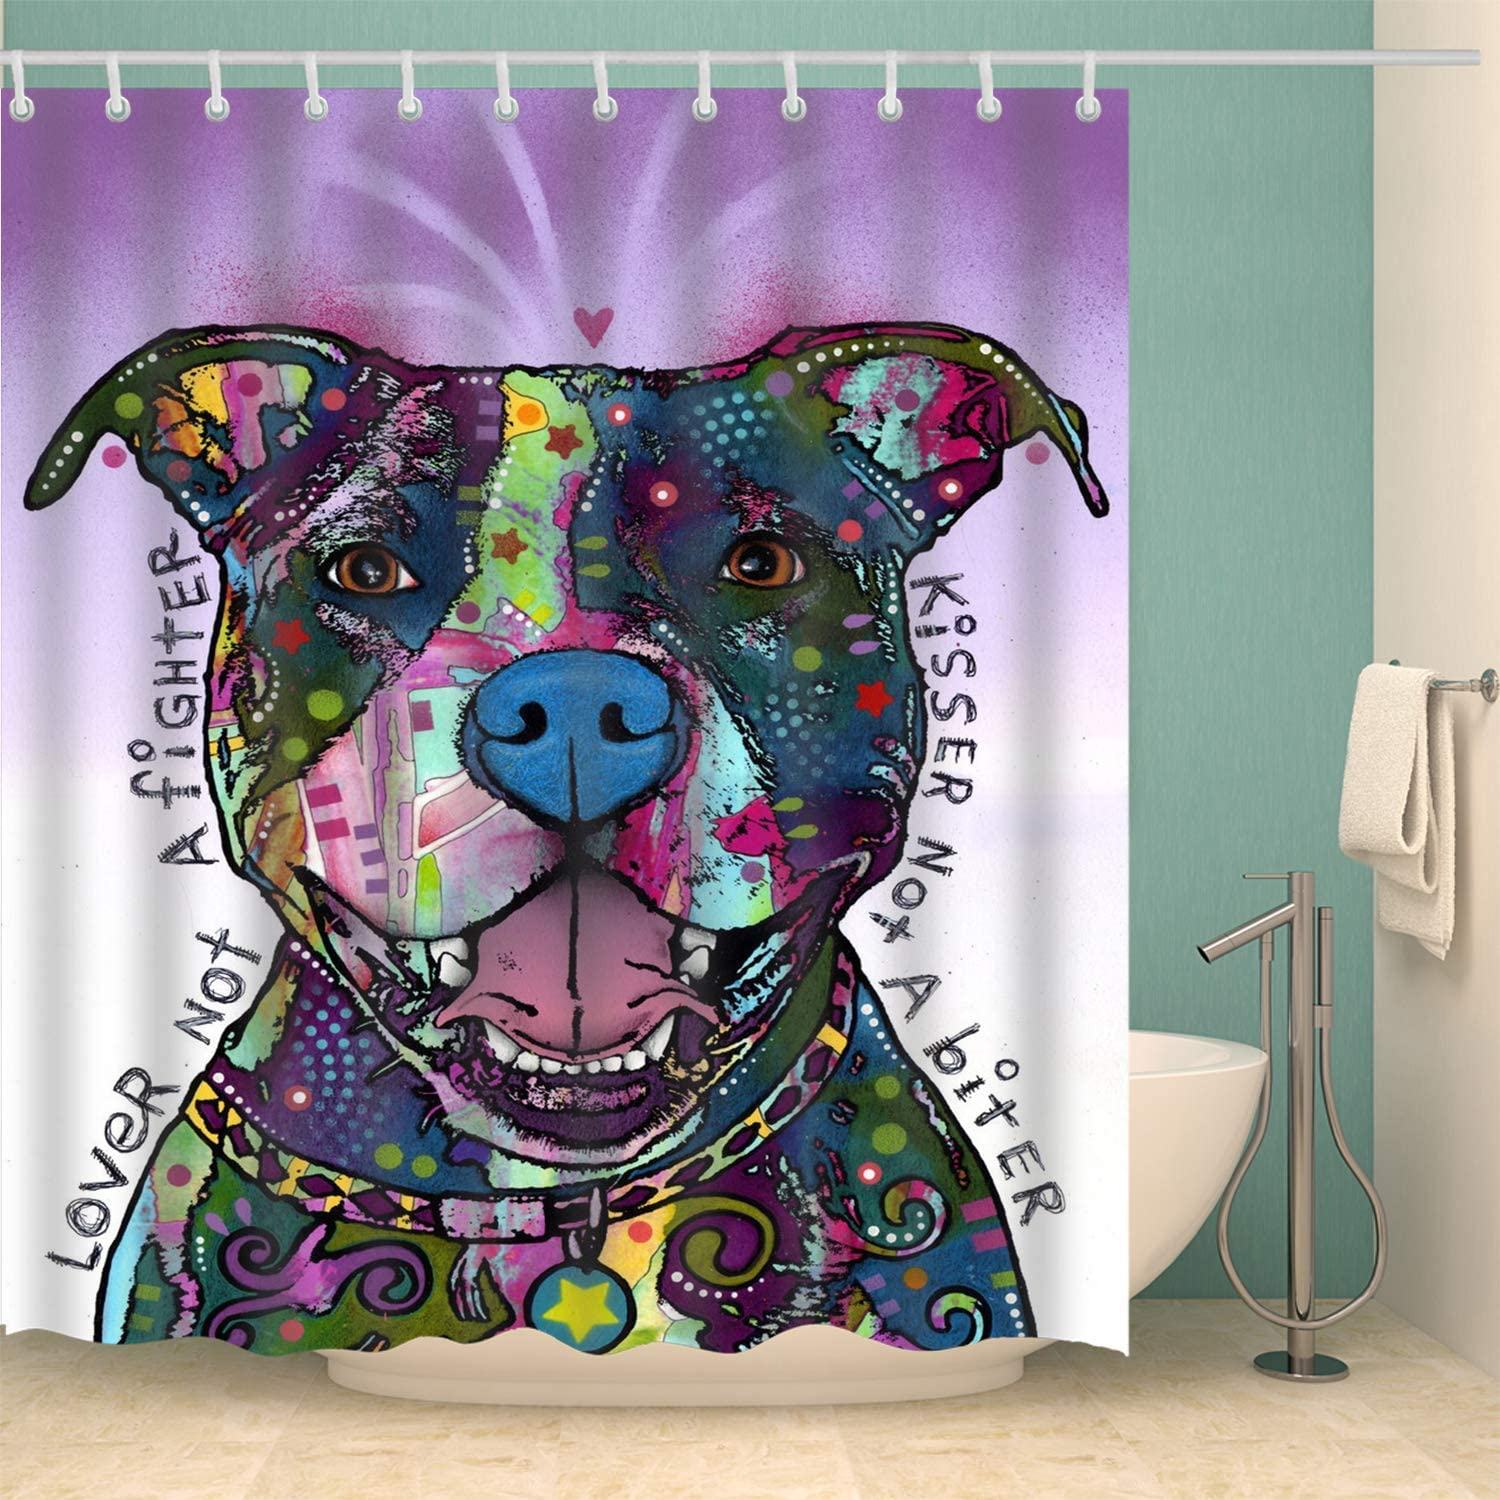 M maoav Dog Shower Curtain,3D Bathroom Colorful Lovely Cartoon Dog Home Decor Shower Curtain with Hook Waterproof Polyester 70x70 inch